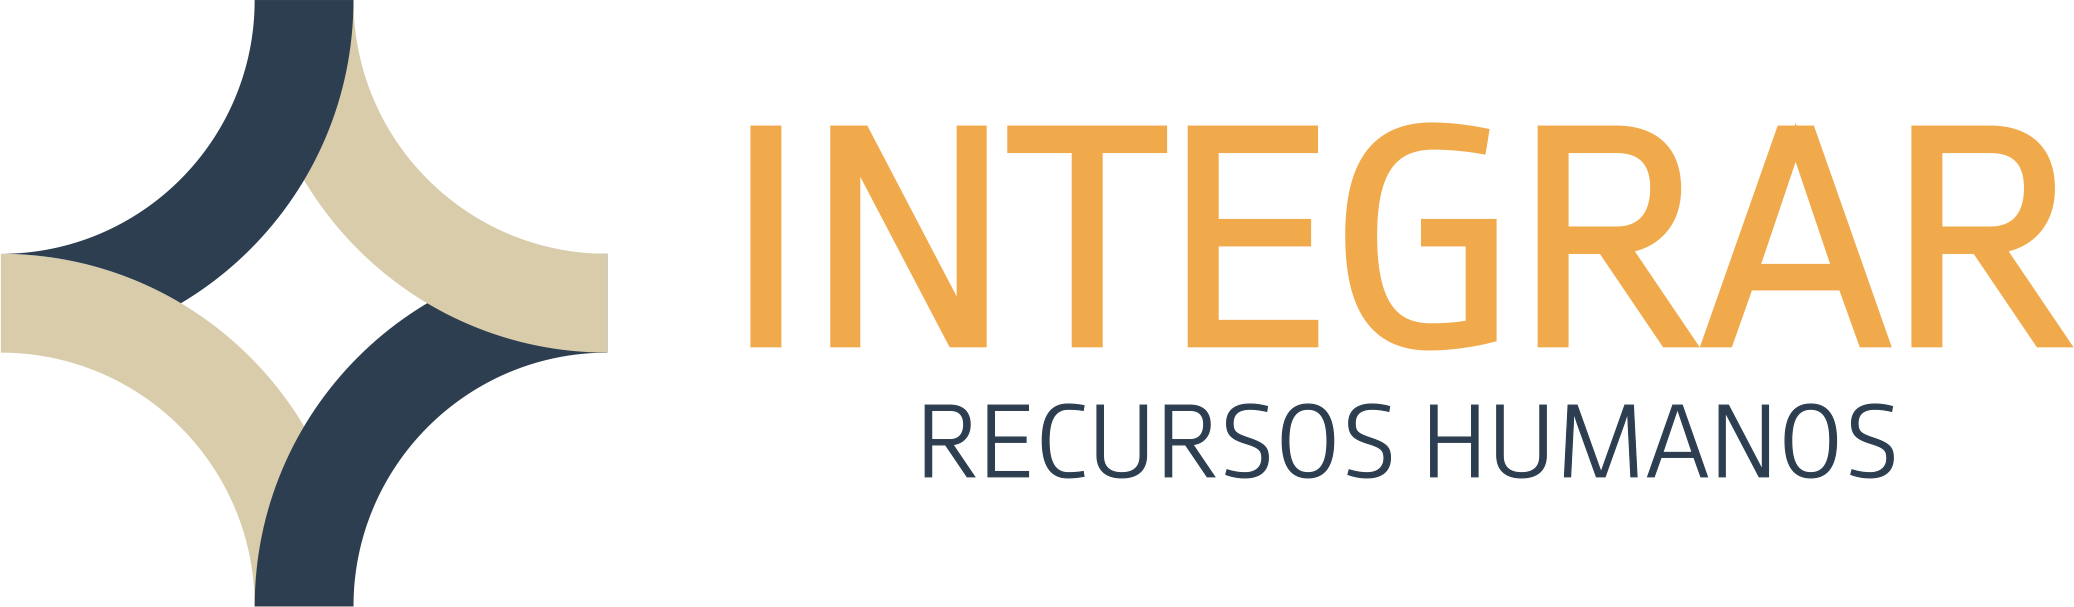 INTEGRAR-LOGO-COLOR-H